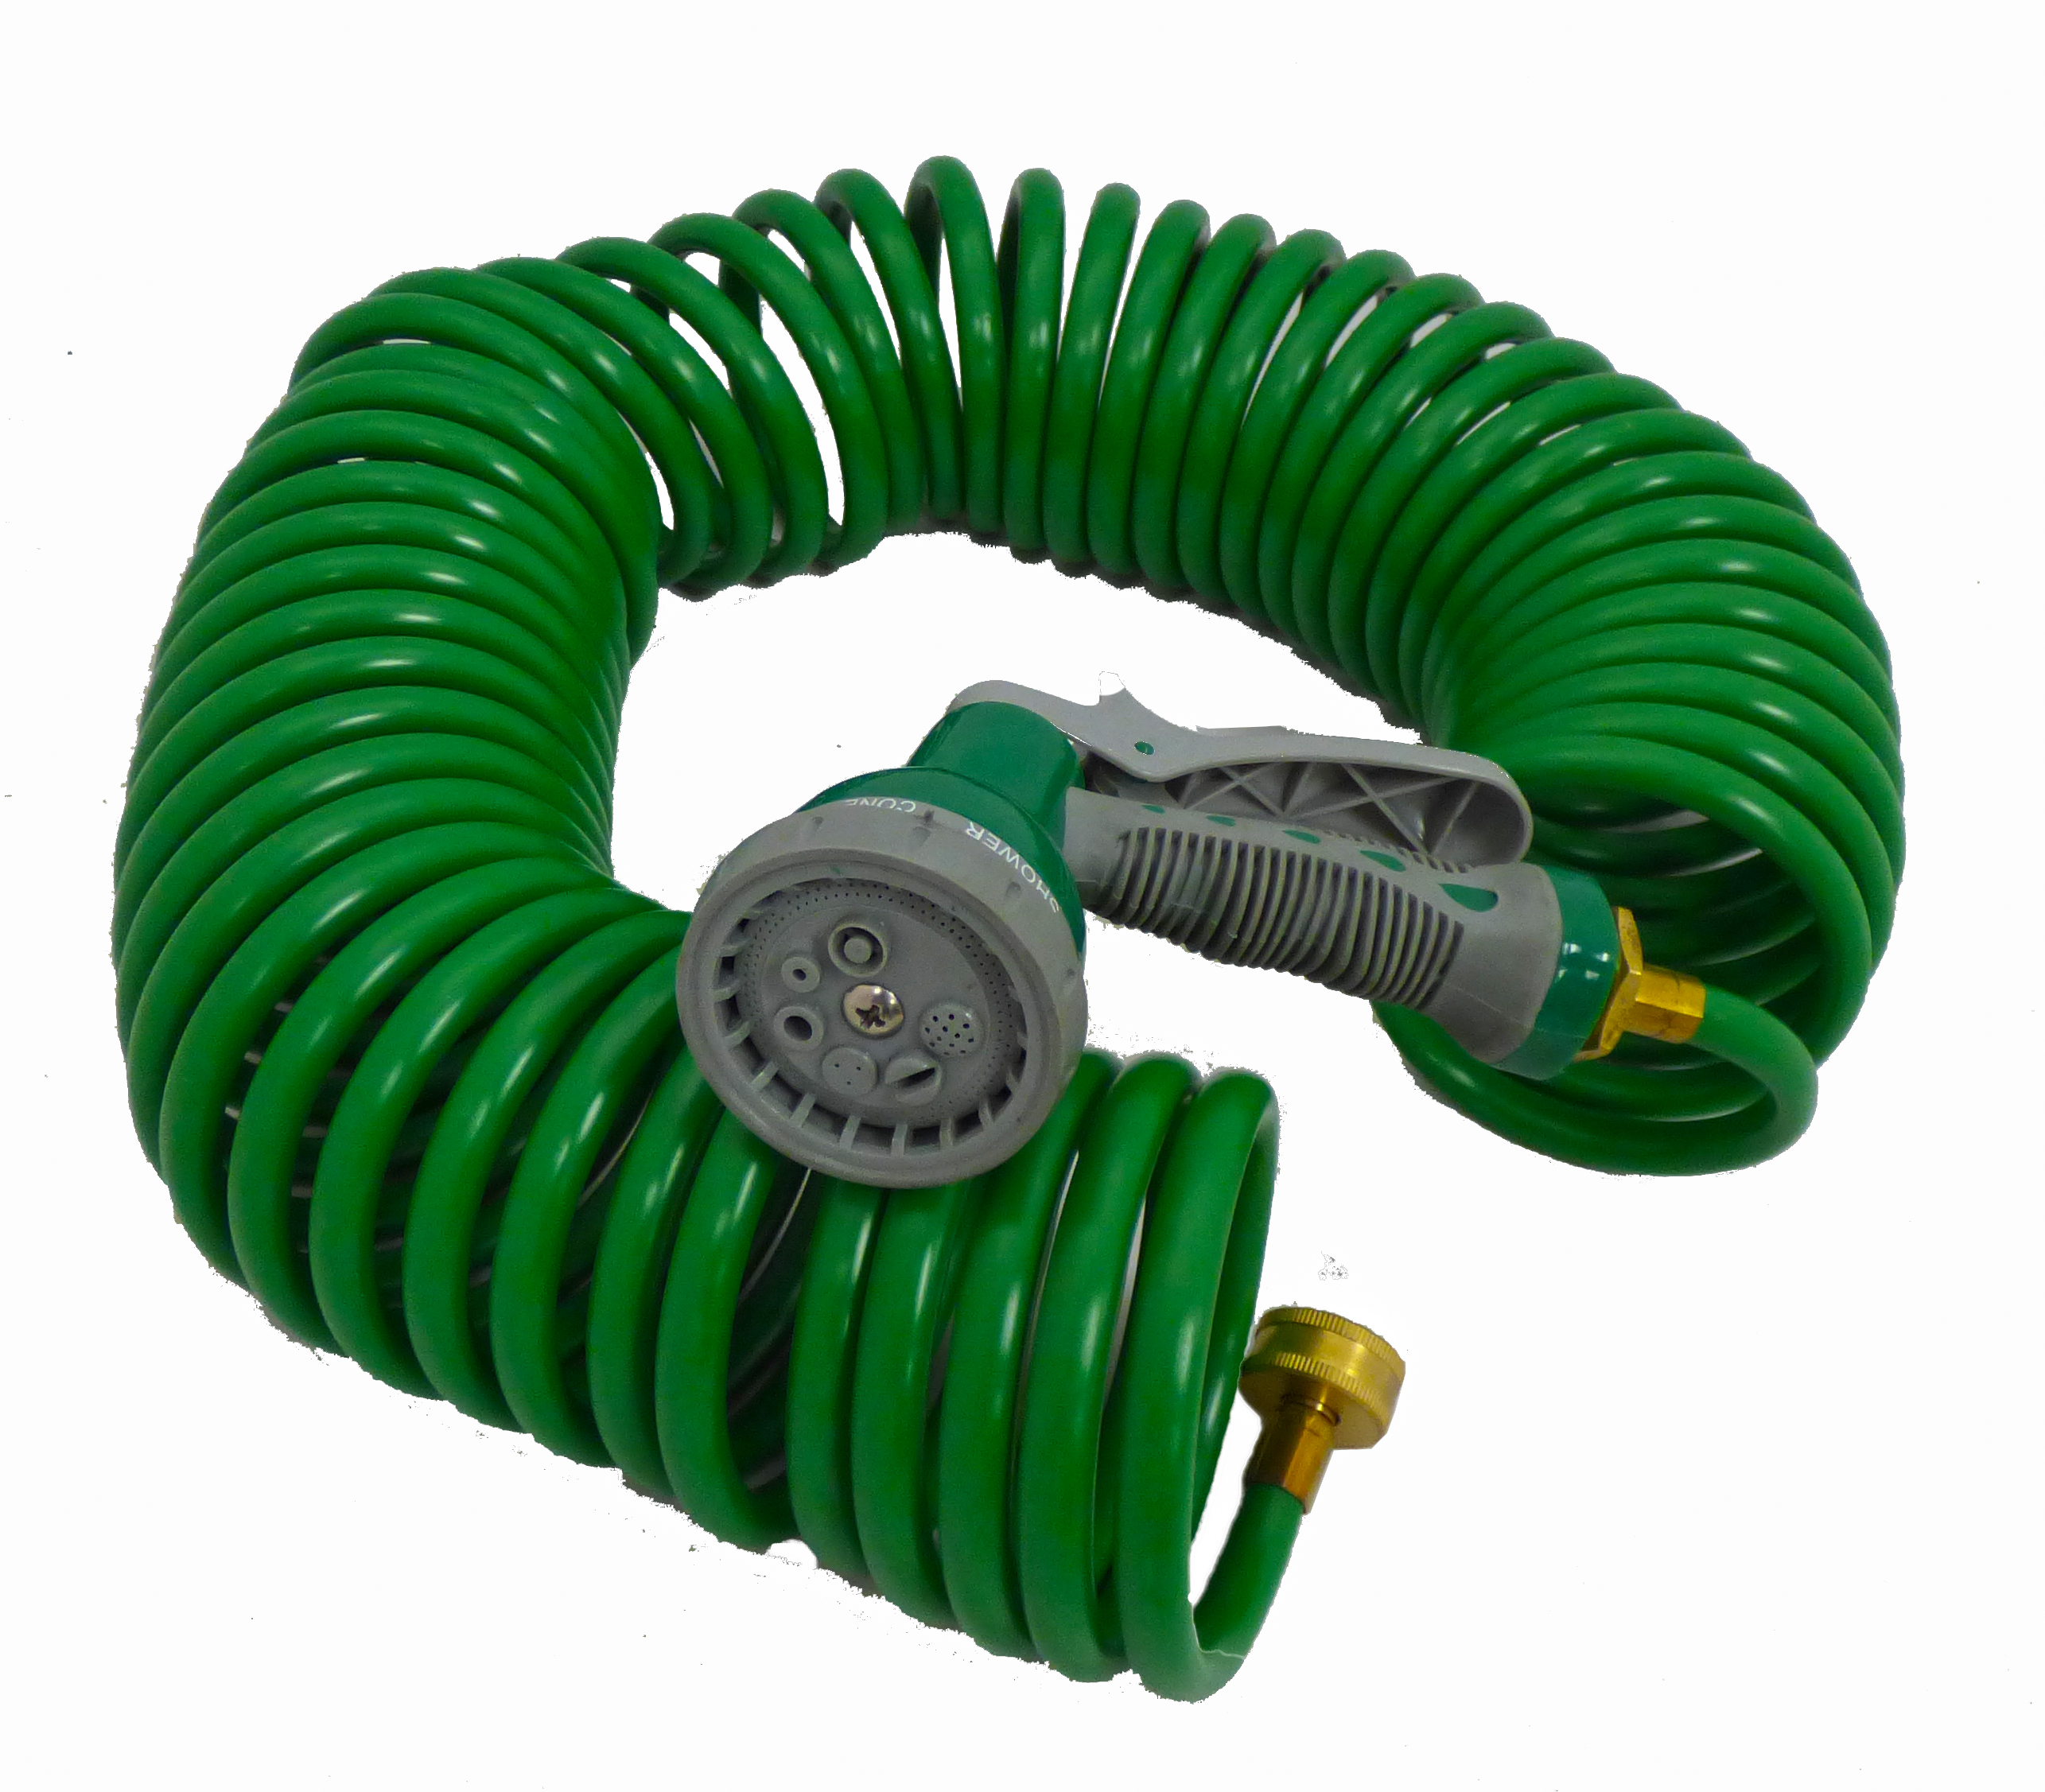 green safe recoil coil garden hose with 7 pattern spray nozzle 50